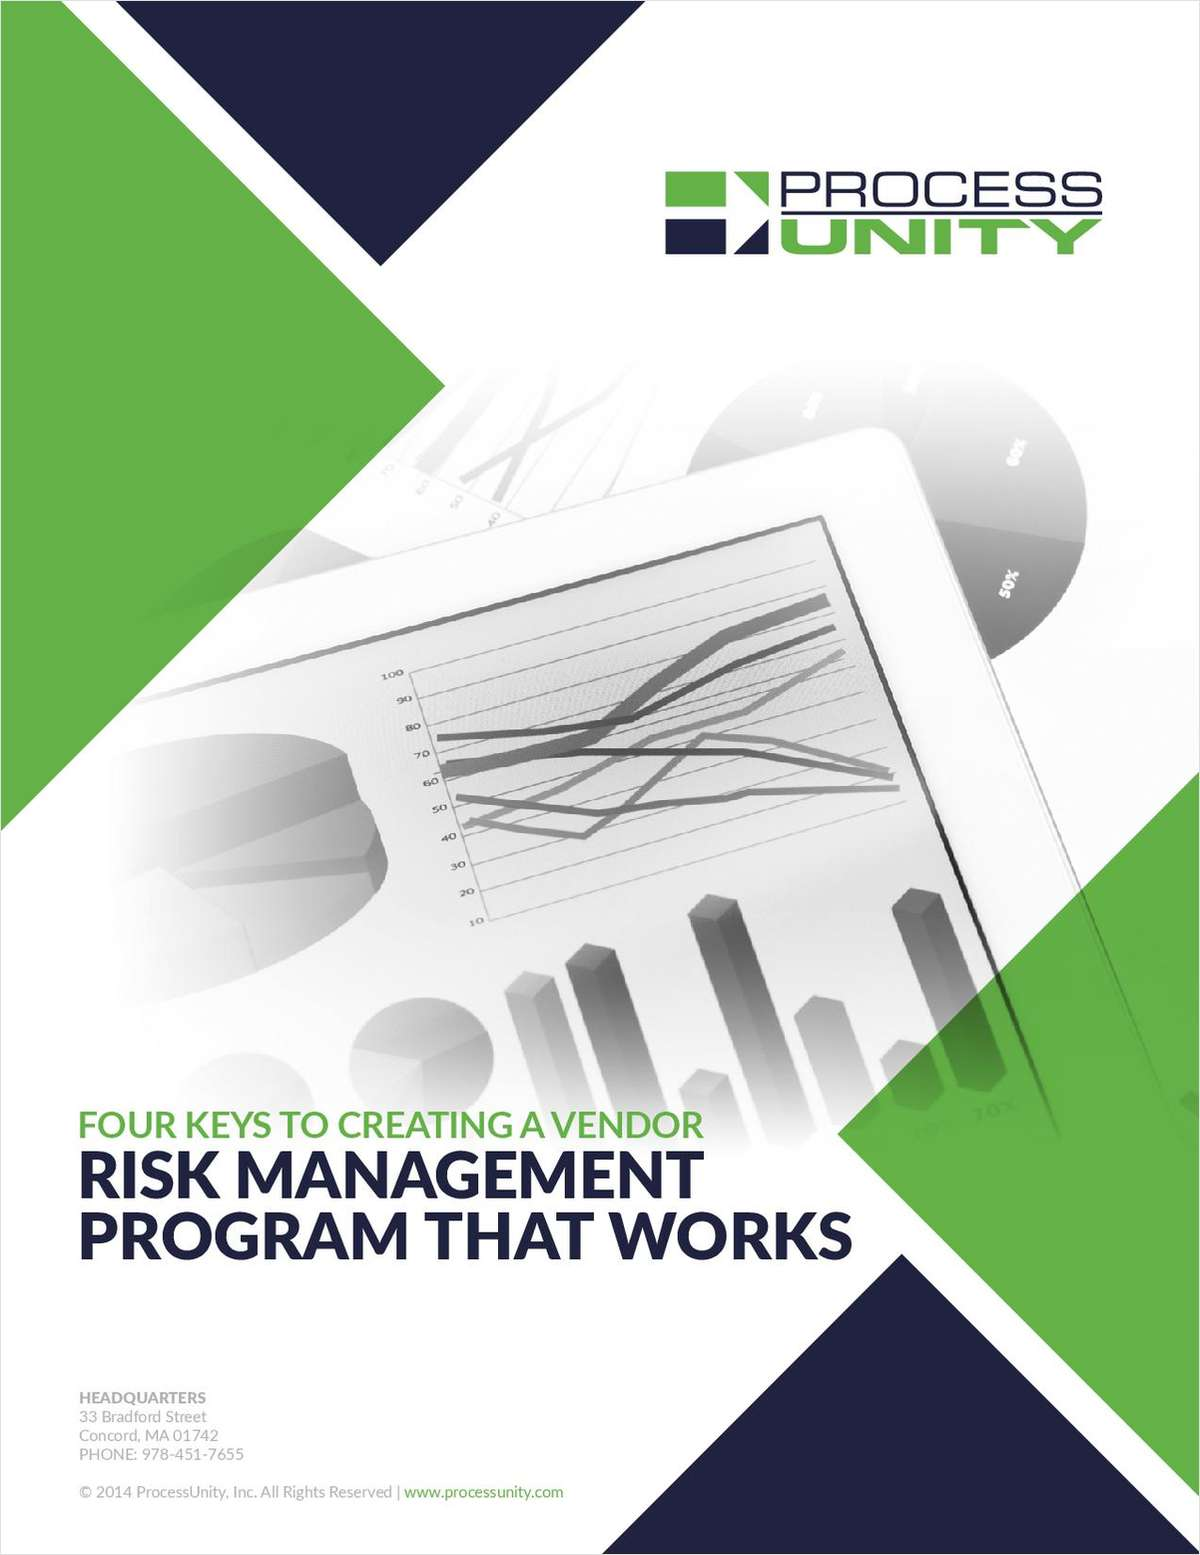 Four Keys to Creating a Vendor Risk Management Program that Works